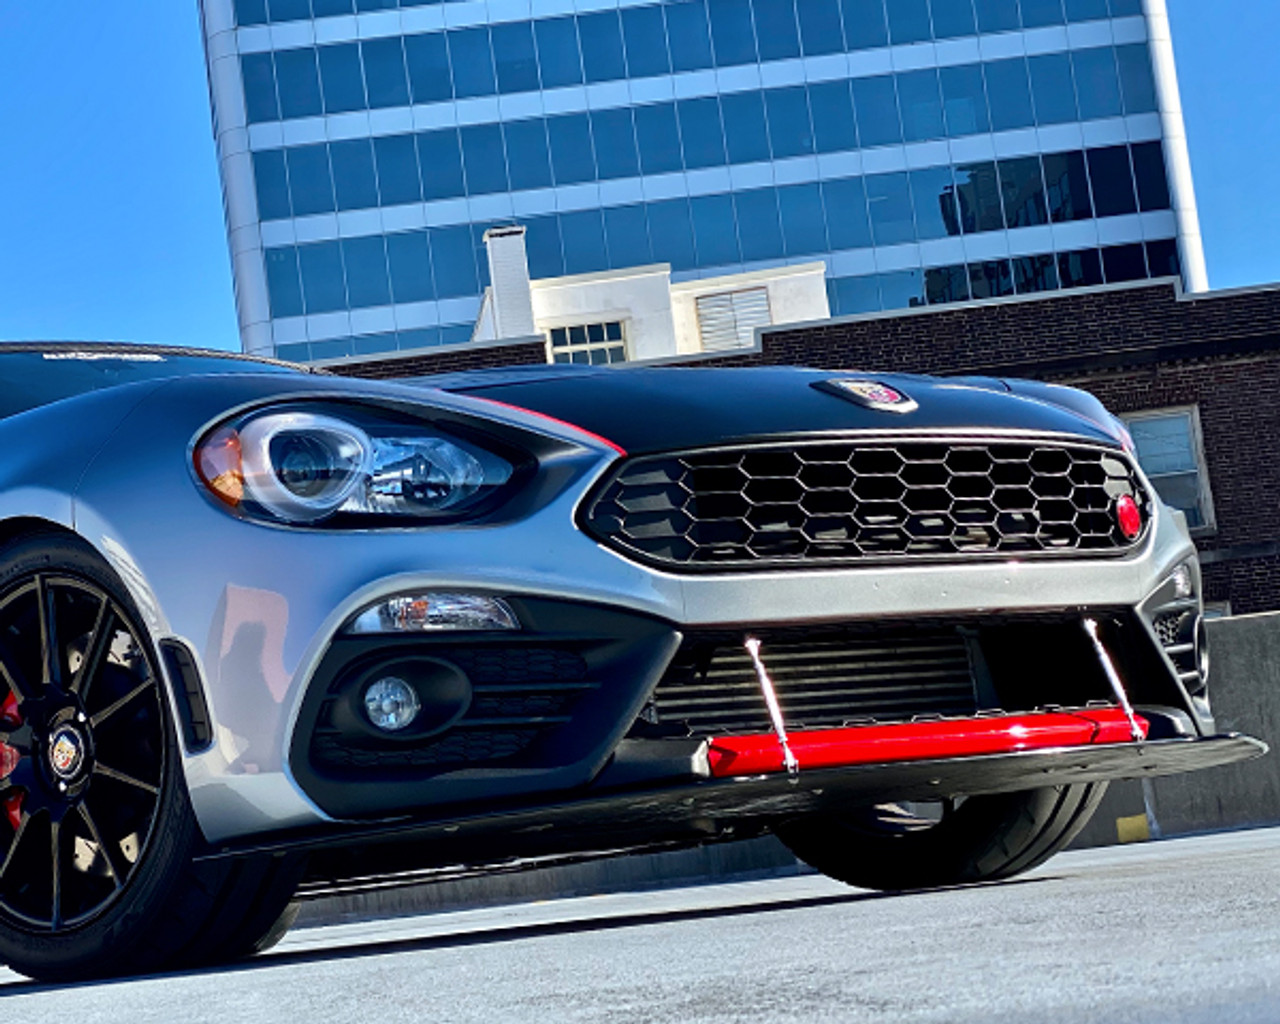 2017-on 124 Spider APR Performance Front Splitter - Carbon Fiber